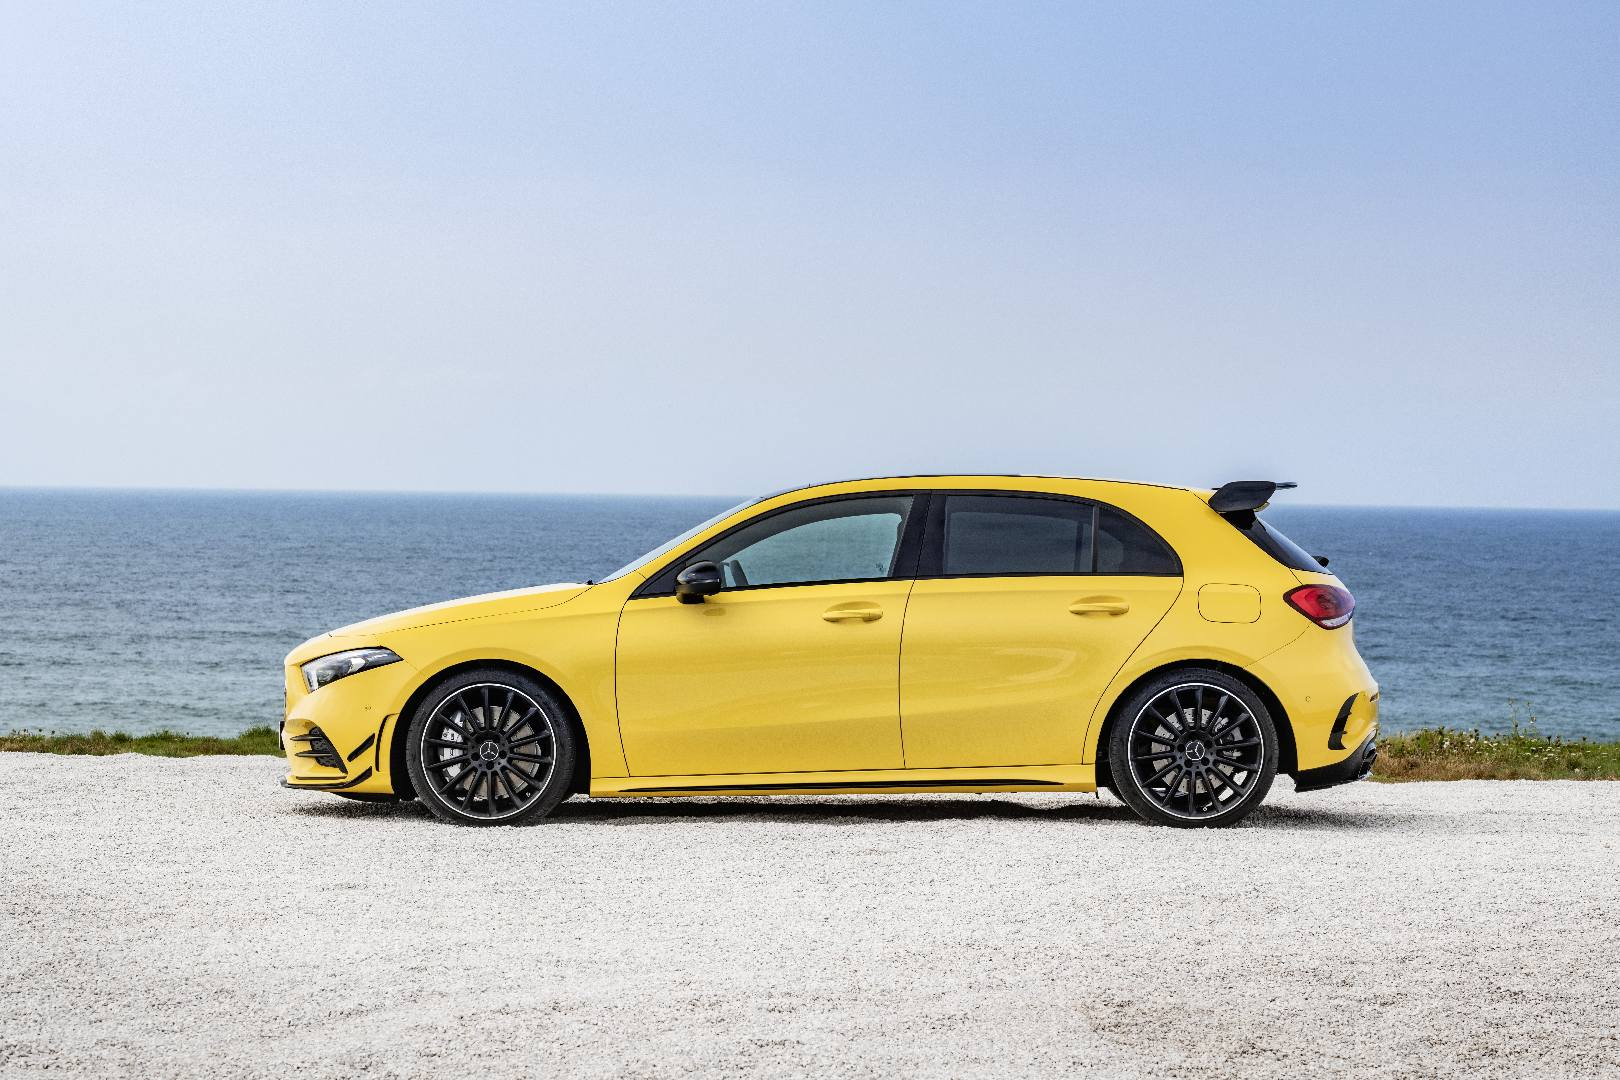 2019 mercedes amg a 35 revealed with 306hp gtspirit. Black Bedroom Furniture Sets. Home Design Ideas